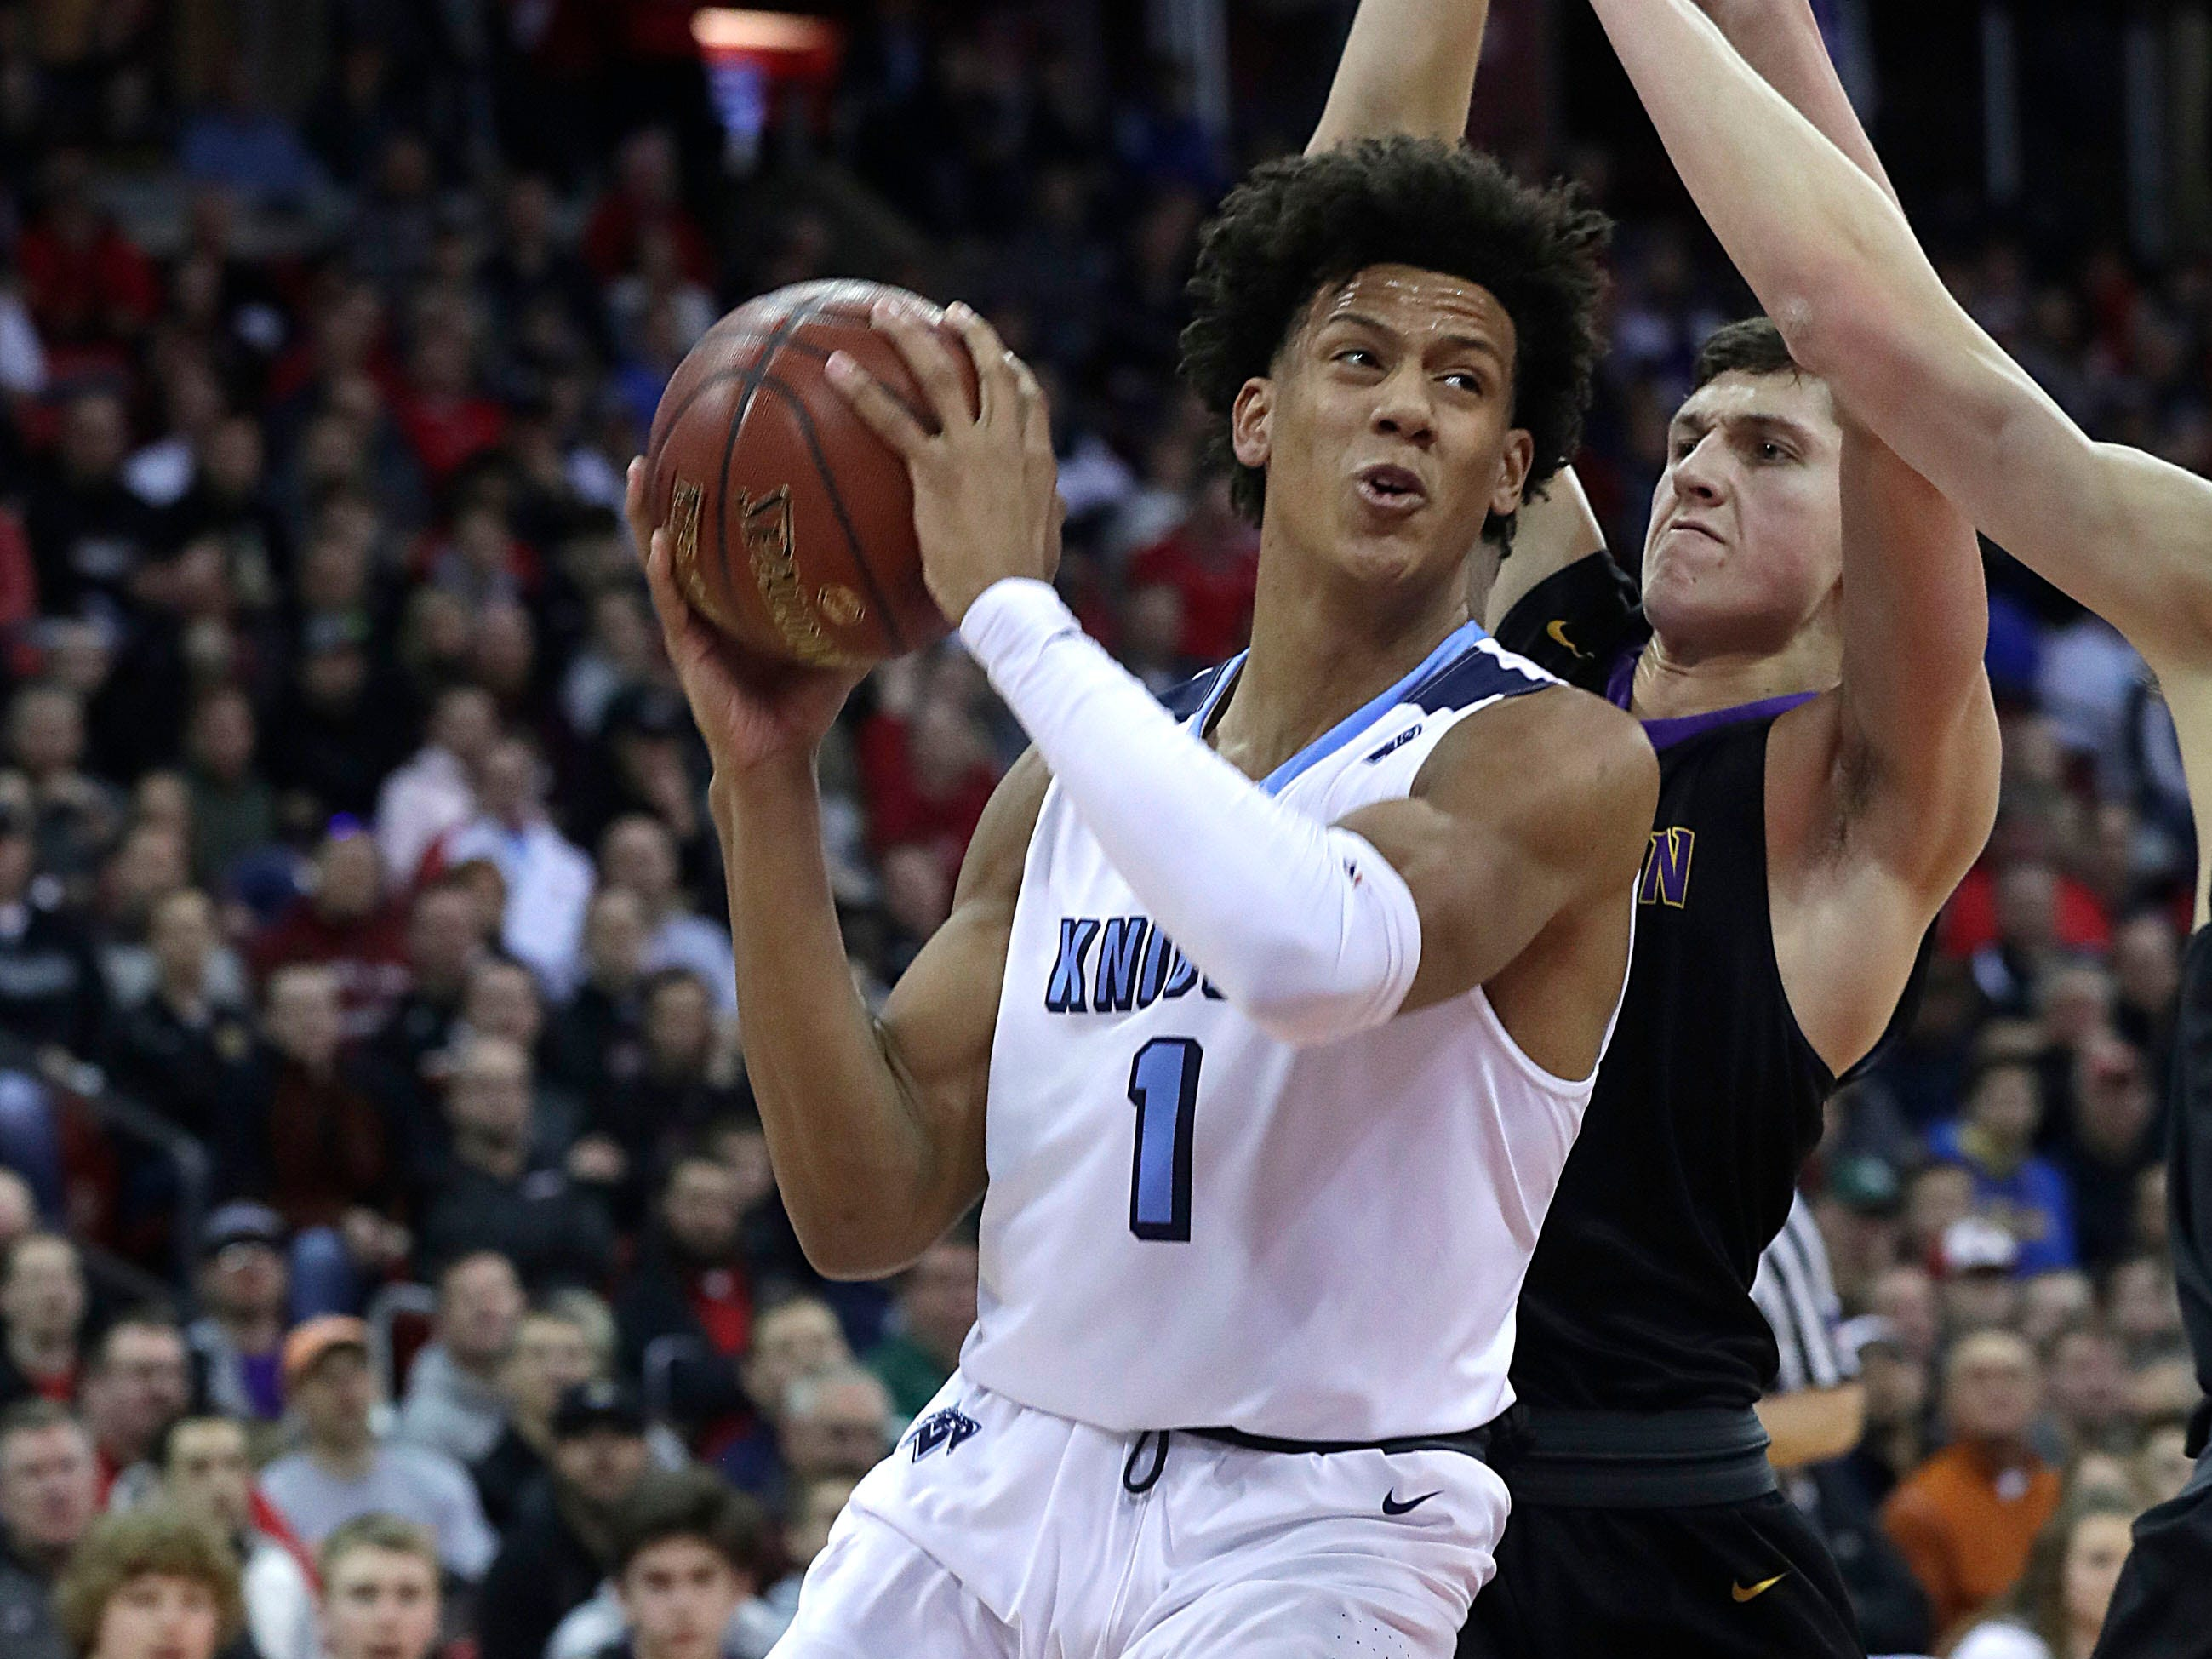 Nicolet's Jalen Johnson gets past defenders for a basket Friday in the Division 2 semifinals.